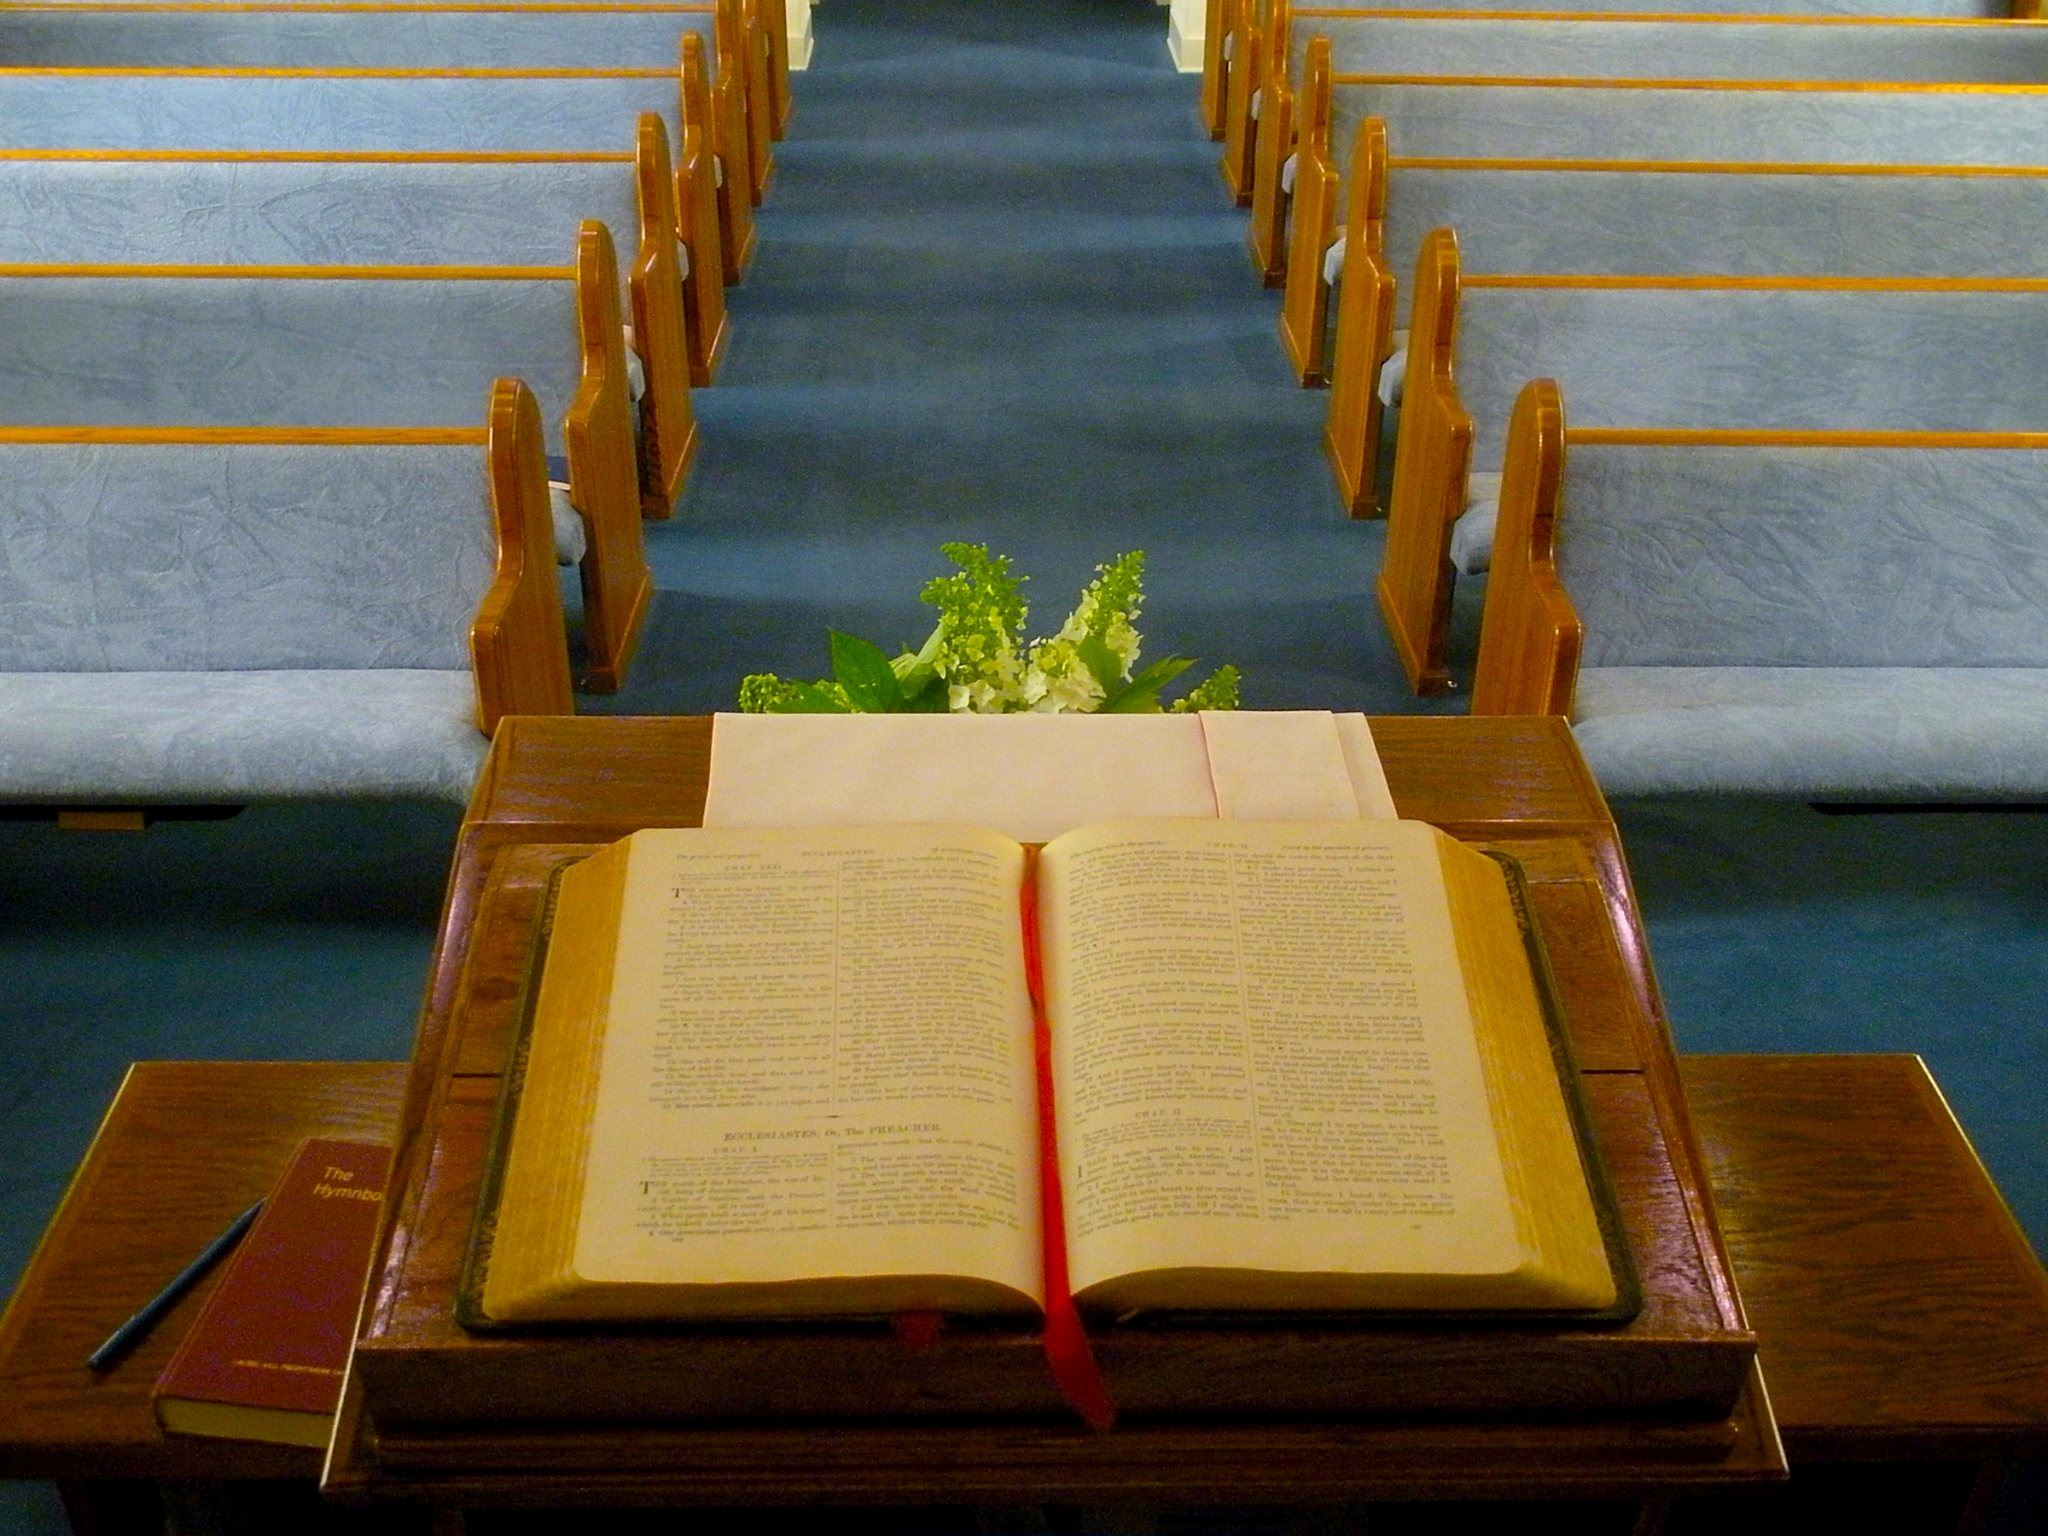 A Bible lies open on a local church's pulpit.